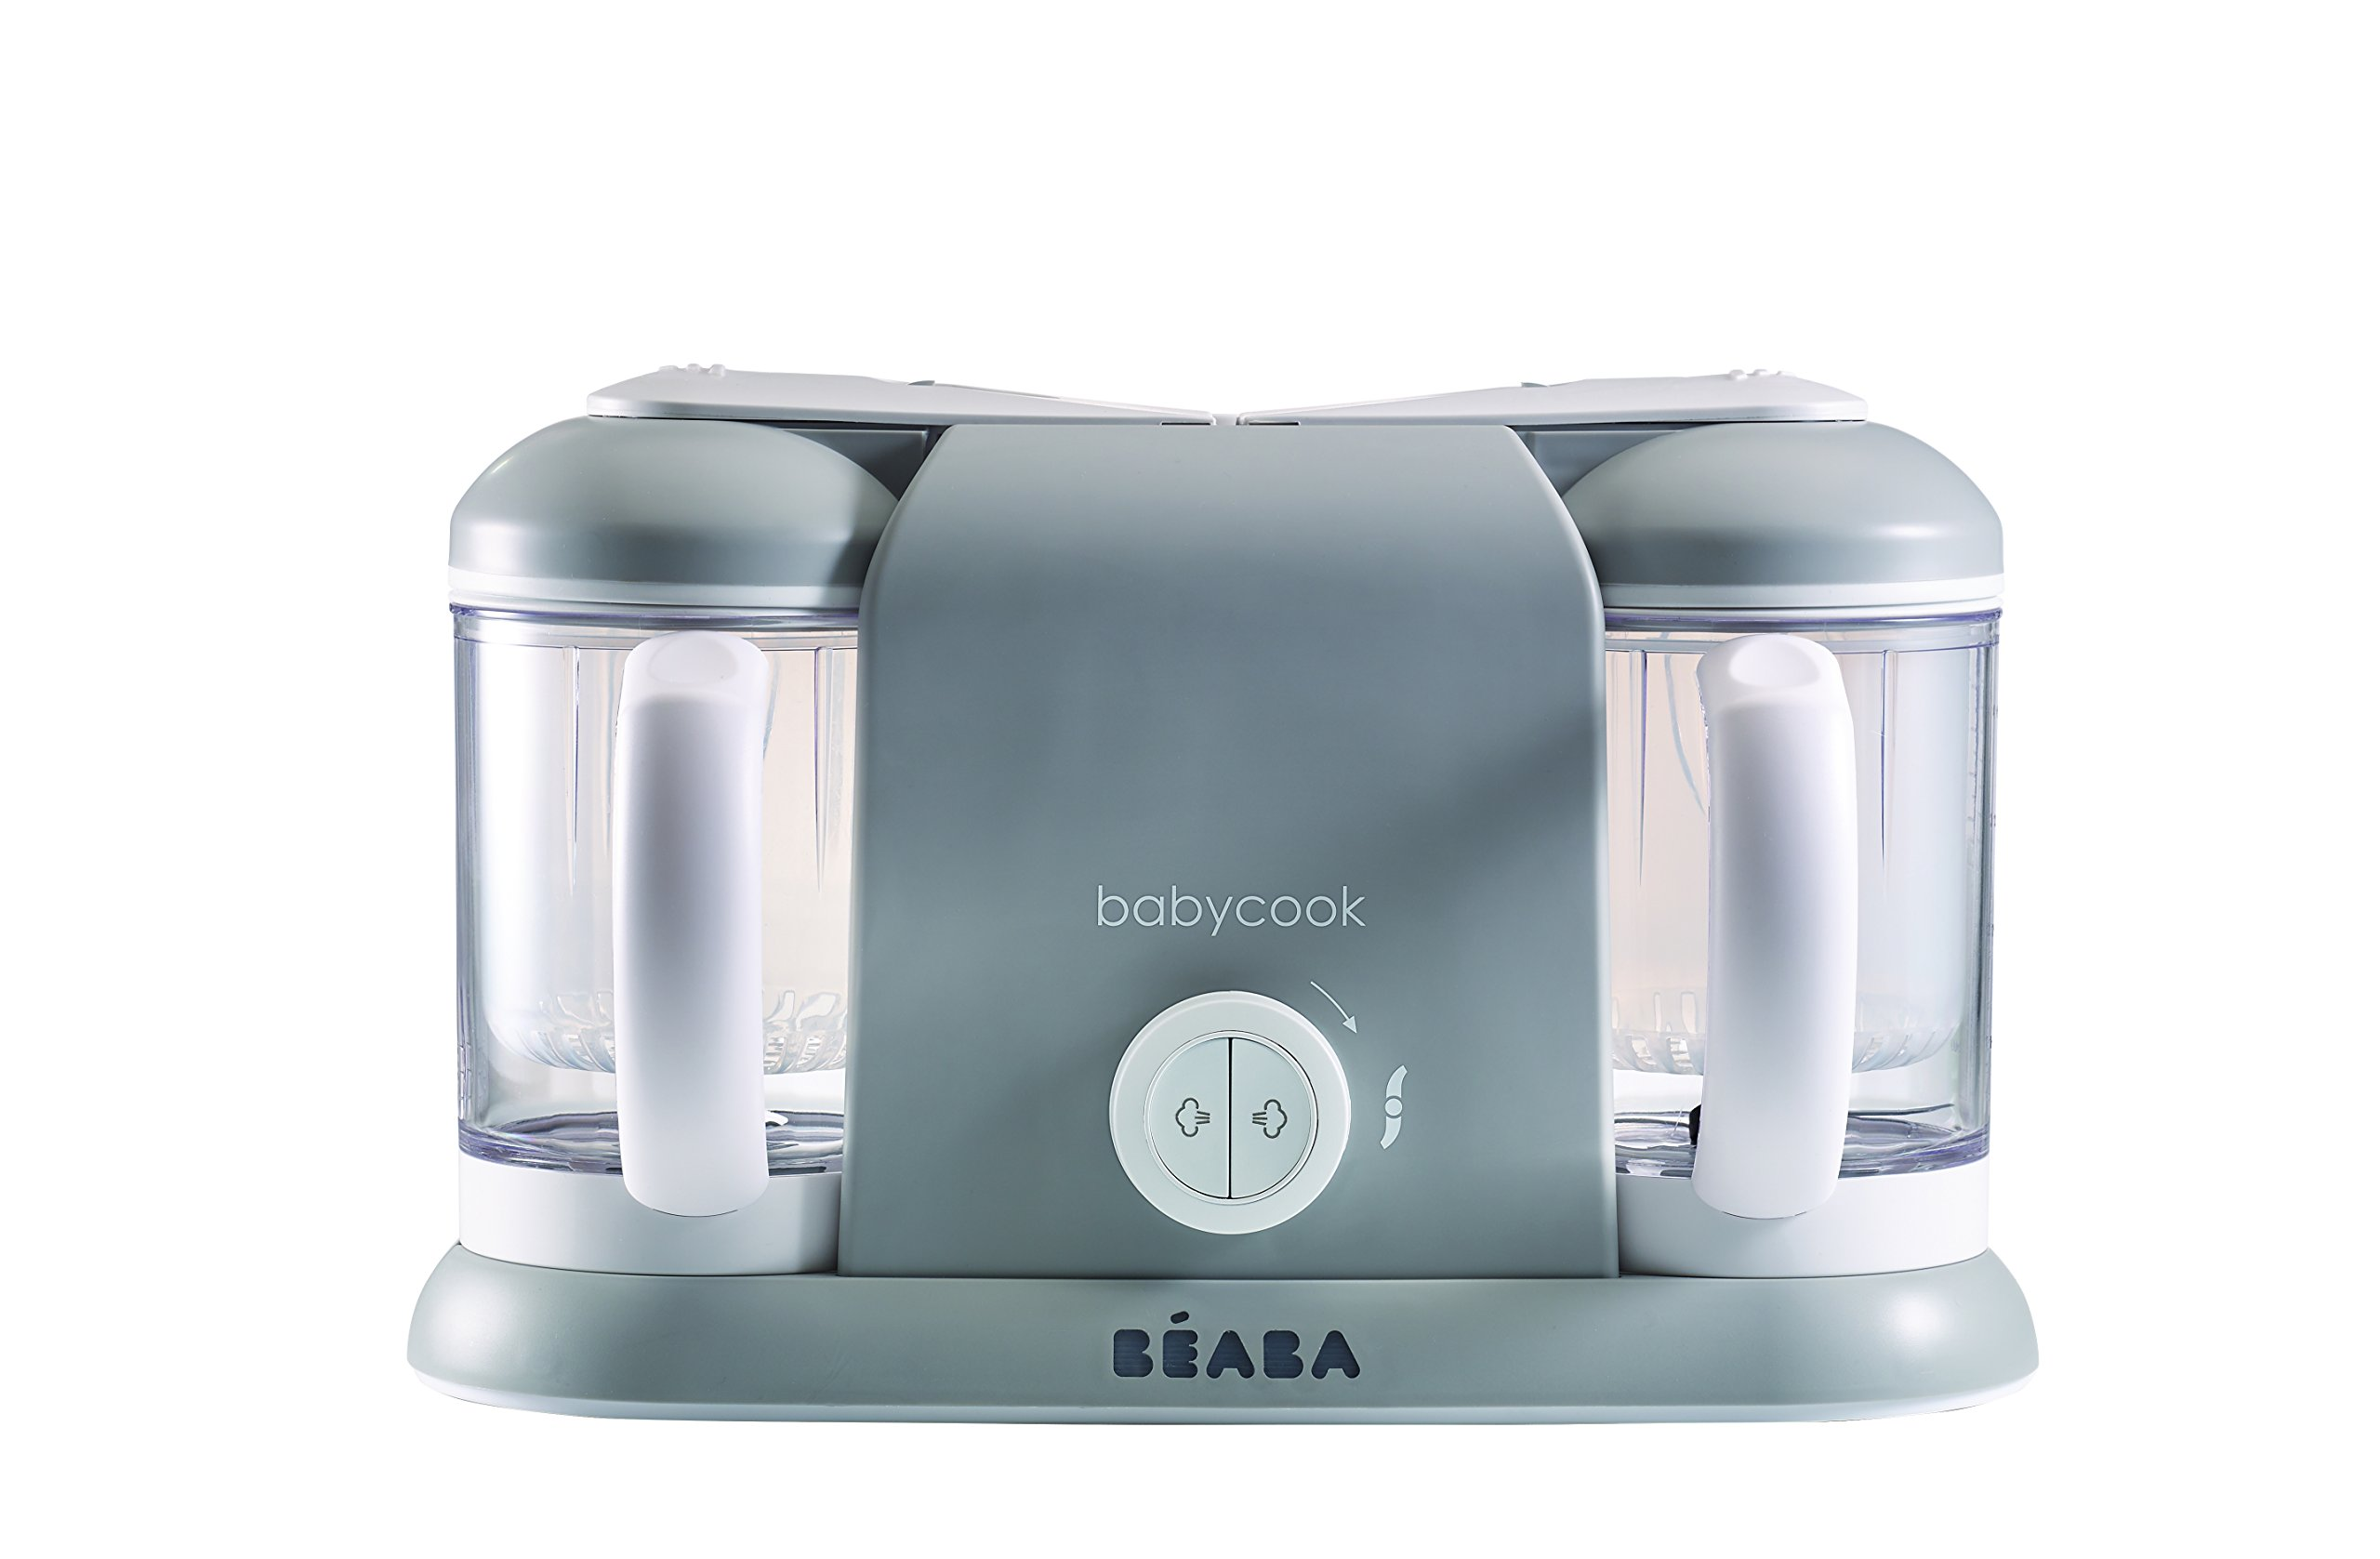 BEABA Babycook Plus 4 in 1 Steam Cooker and Blender, 9.4 cups, Dishwasher Safe, Cloud by Beaba